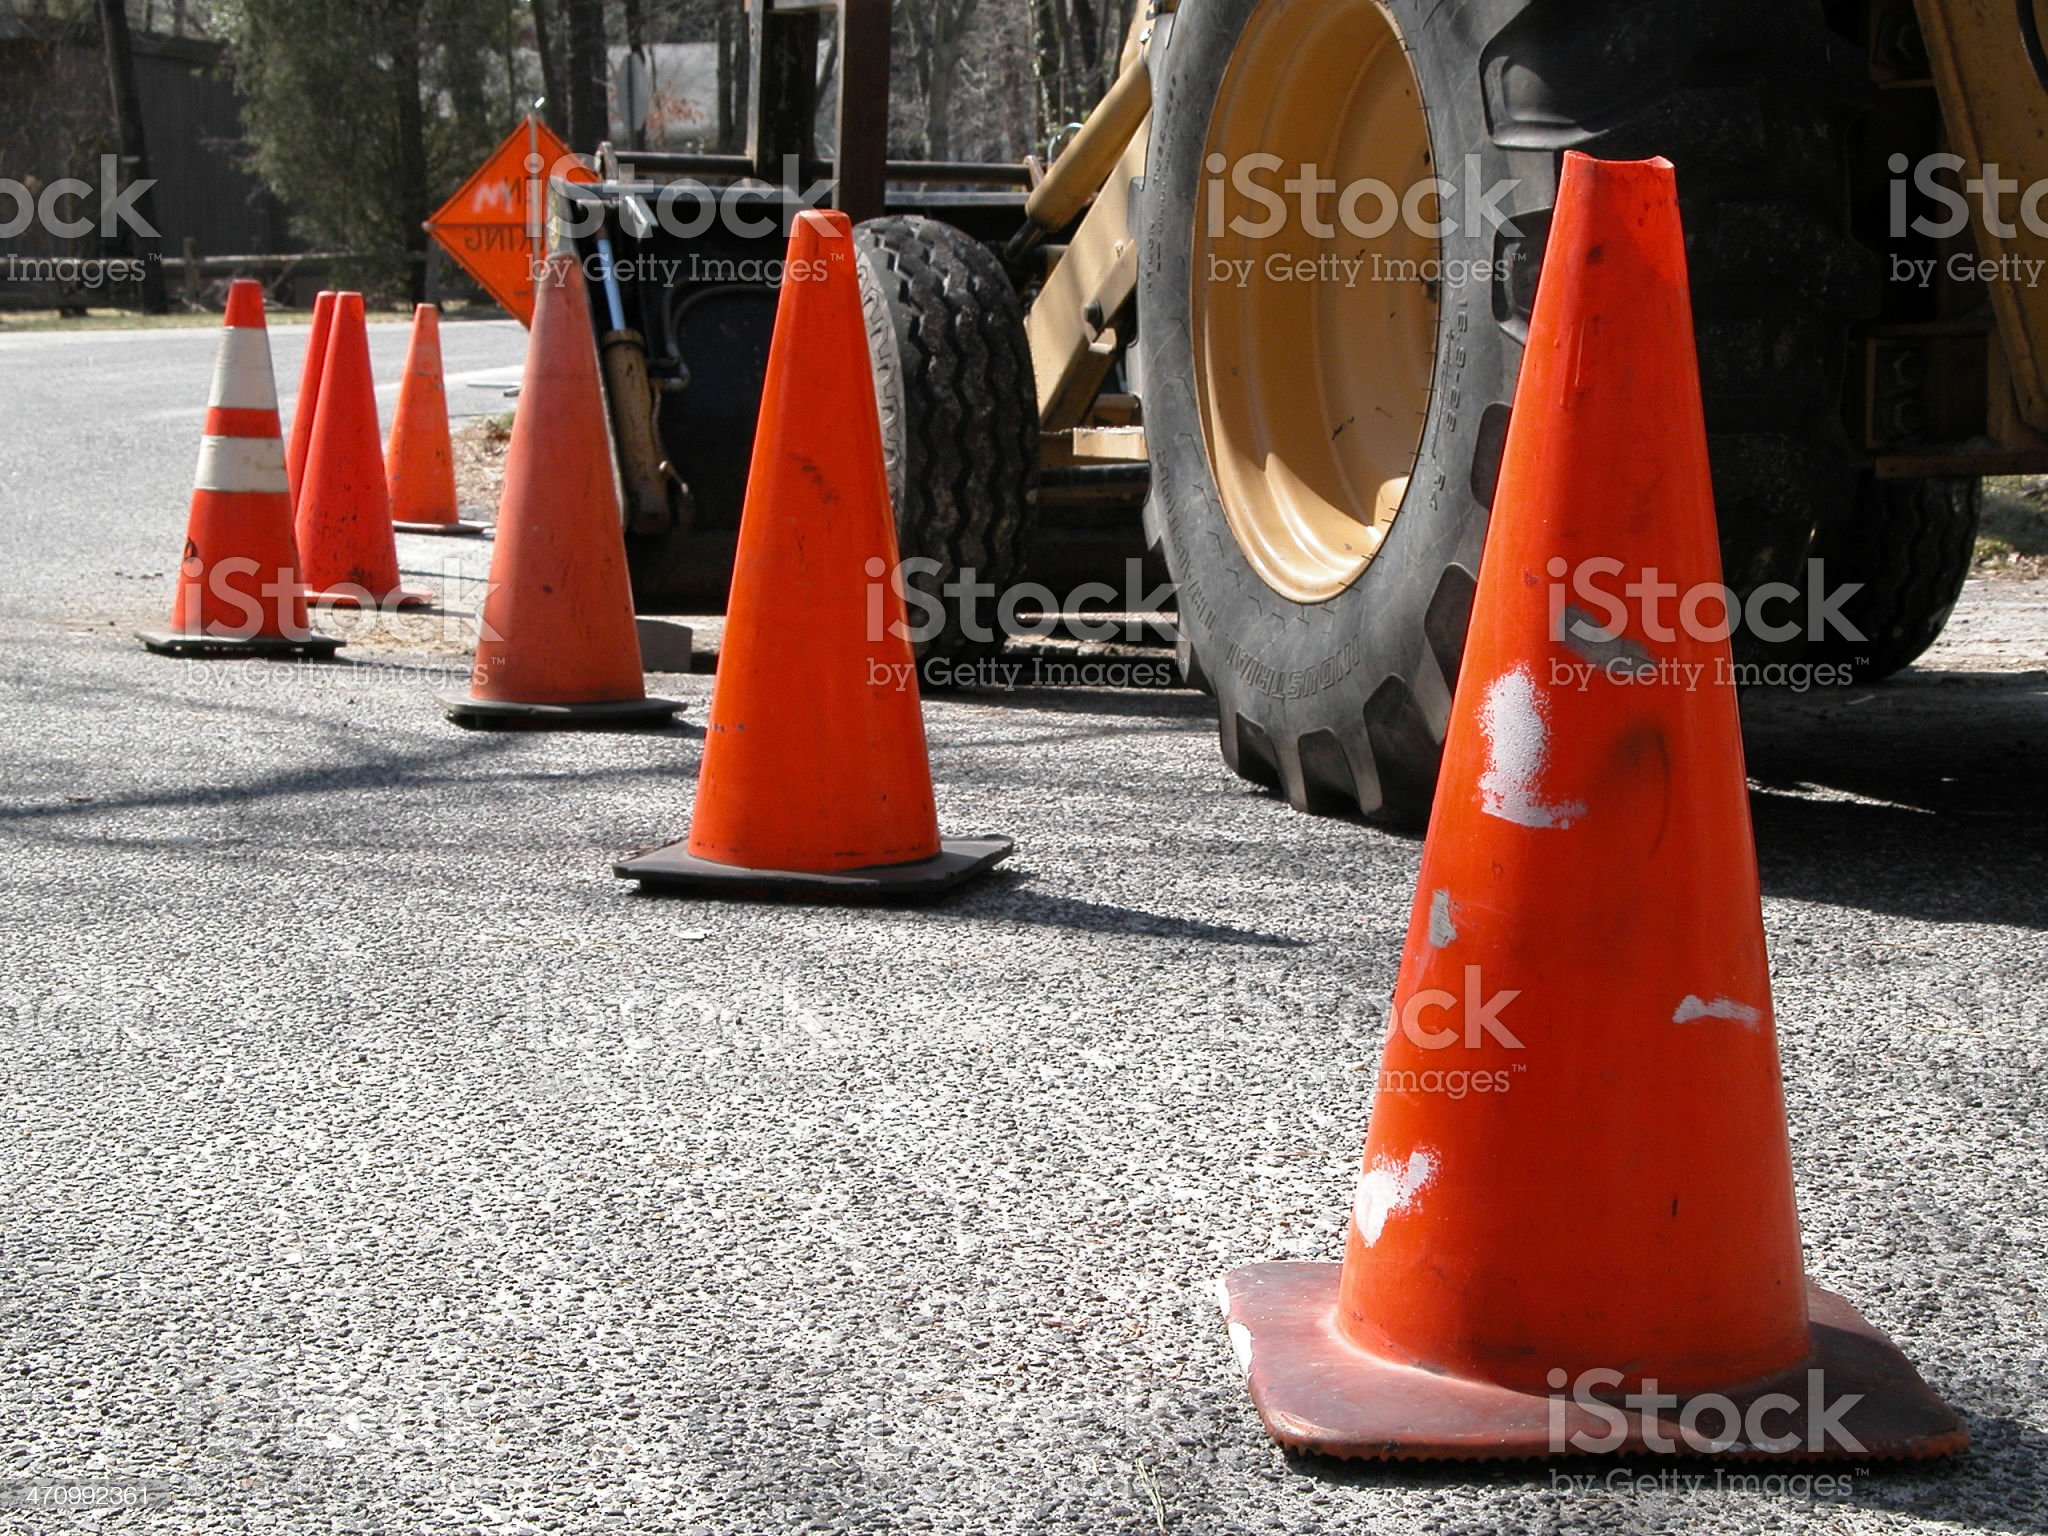 Orange Traffic Cones and  Construction Equipment royalty-free stock photo